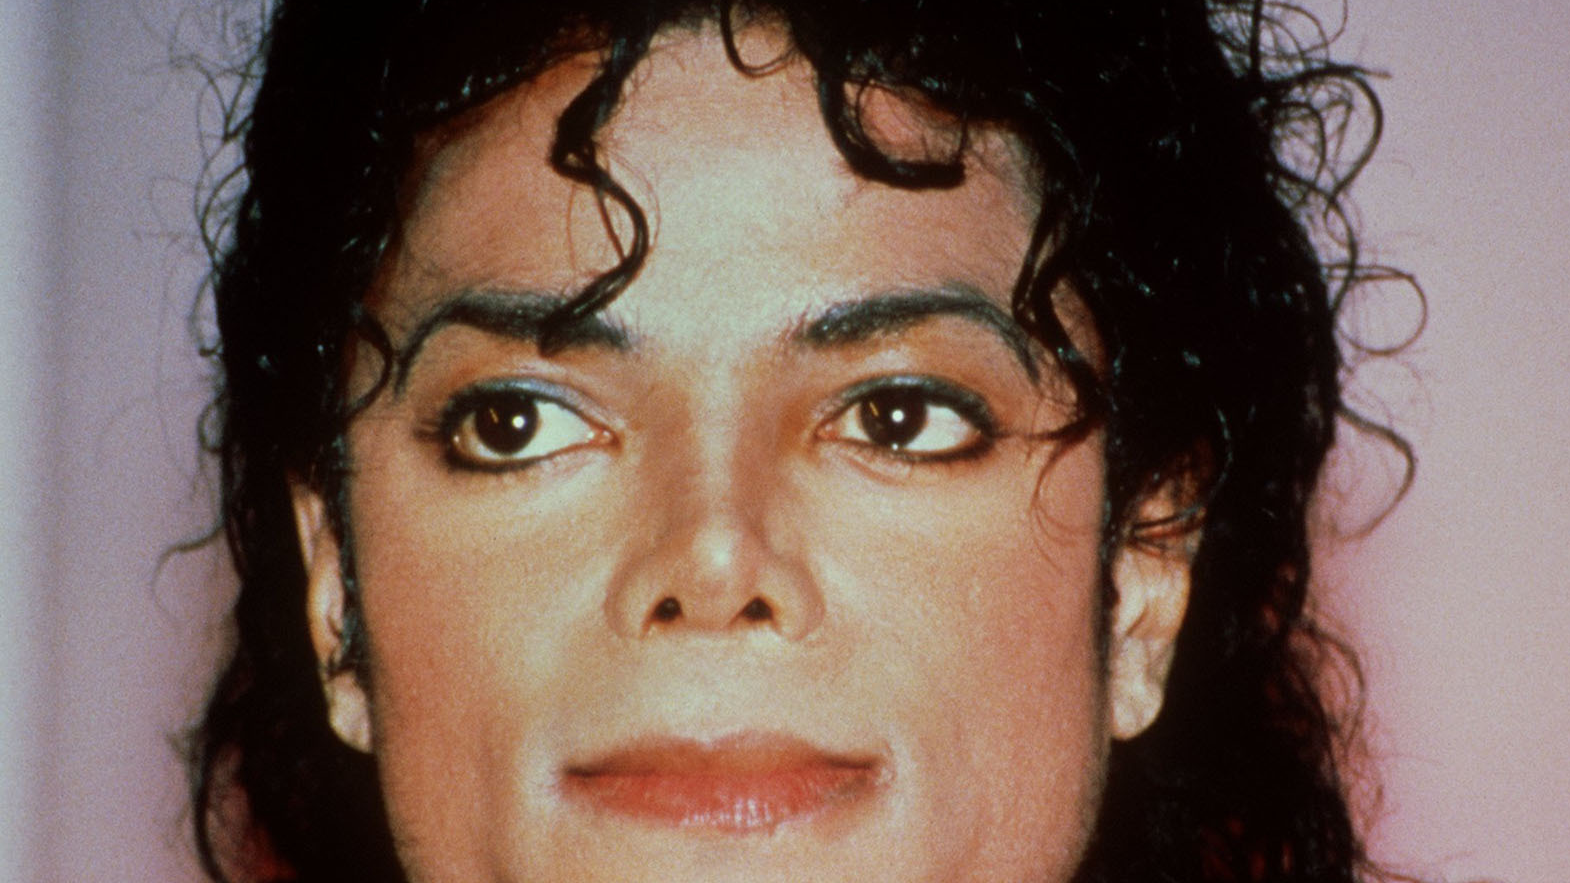 Macaulay Culkin Reveals Truth About Relationship With Michael Jackson. Credit: PA